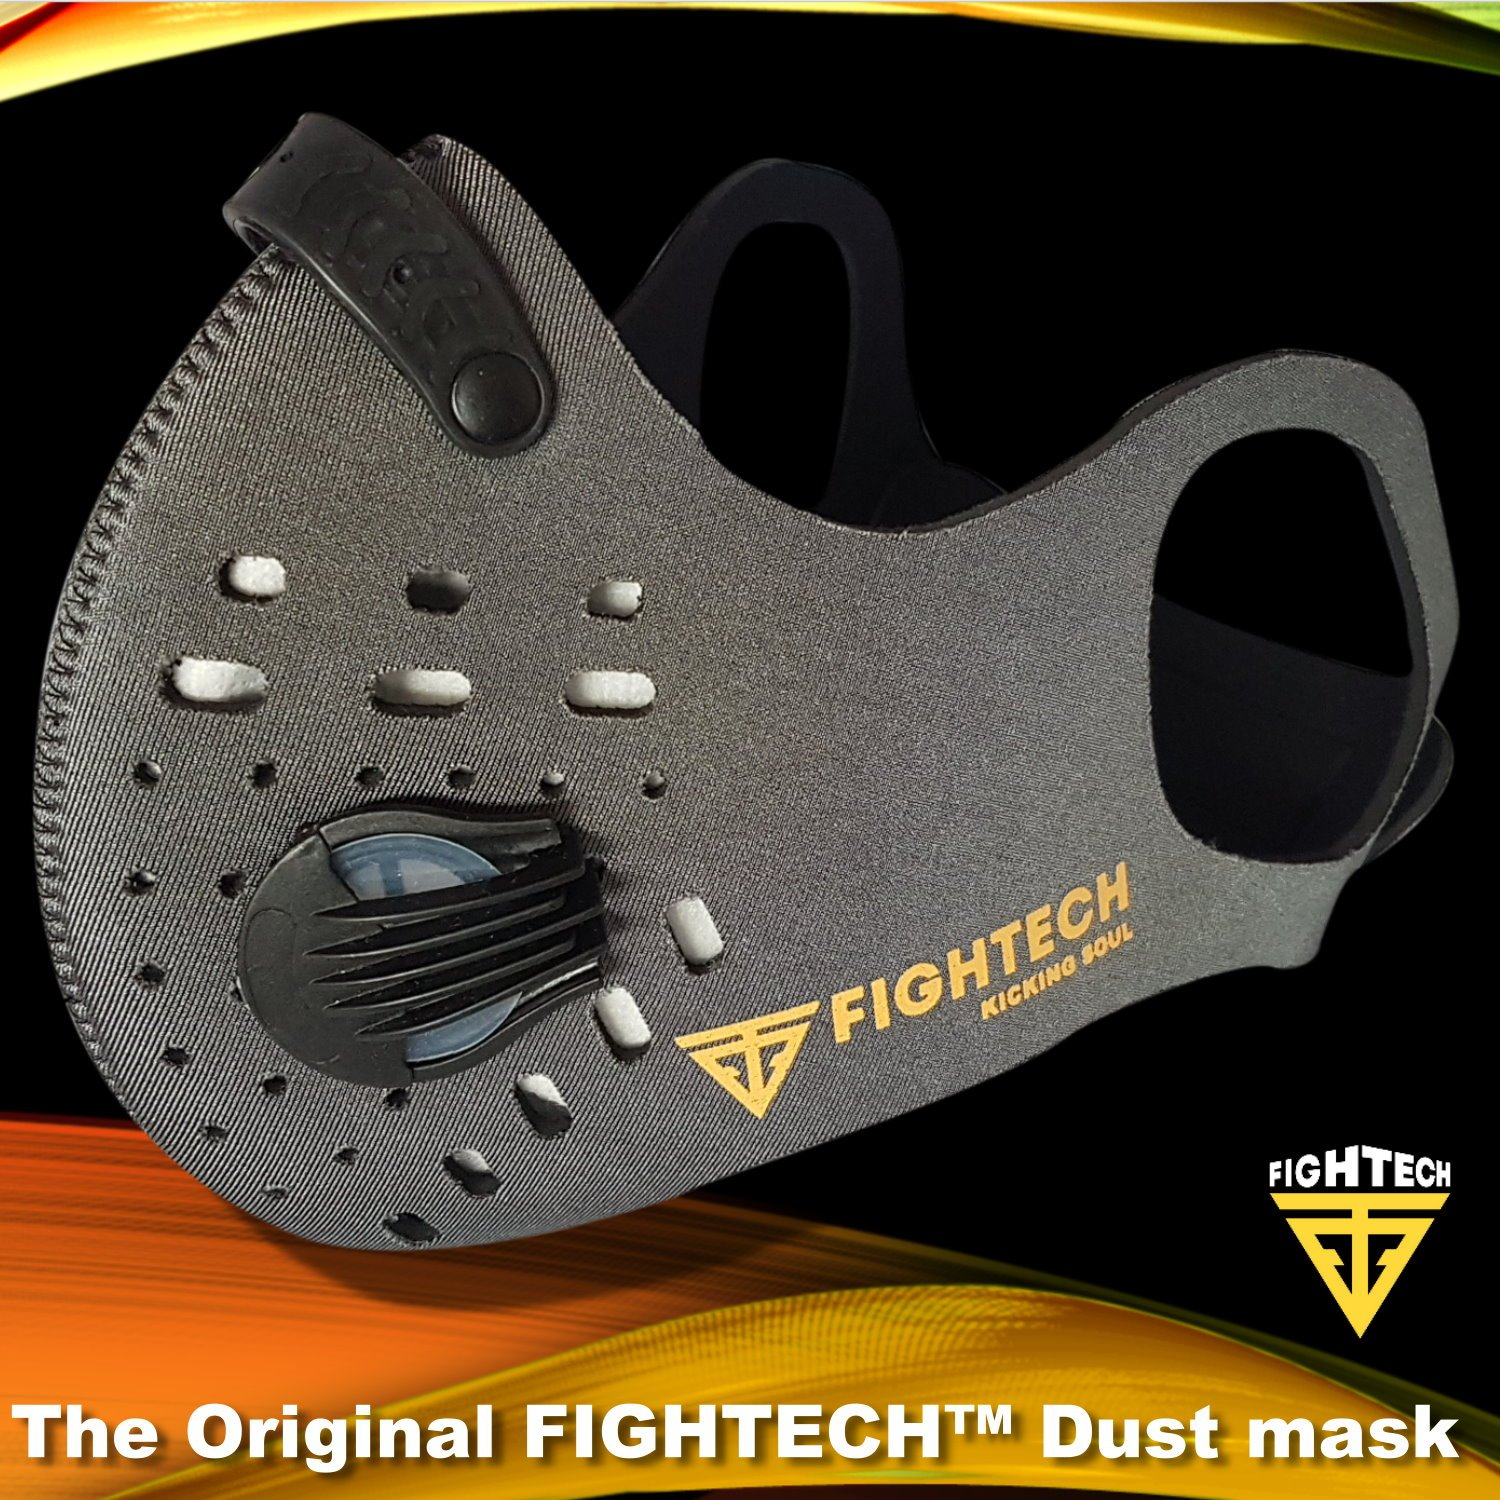 N99 Dust Mask by FIGHTECH with 4 Activated Carbon N99 Filters & 2 Air Valves. Dustproof Respirator Face Mask Protects from Dust, Allergy and Pollution. Good for Woodwork and Outdoor Activities (GRY) by FIGHTECH (Image #2)